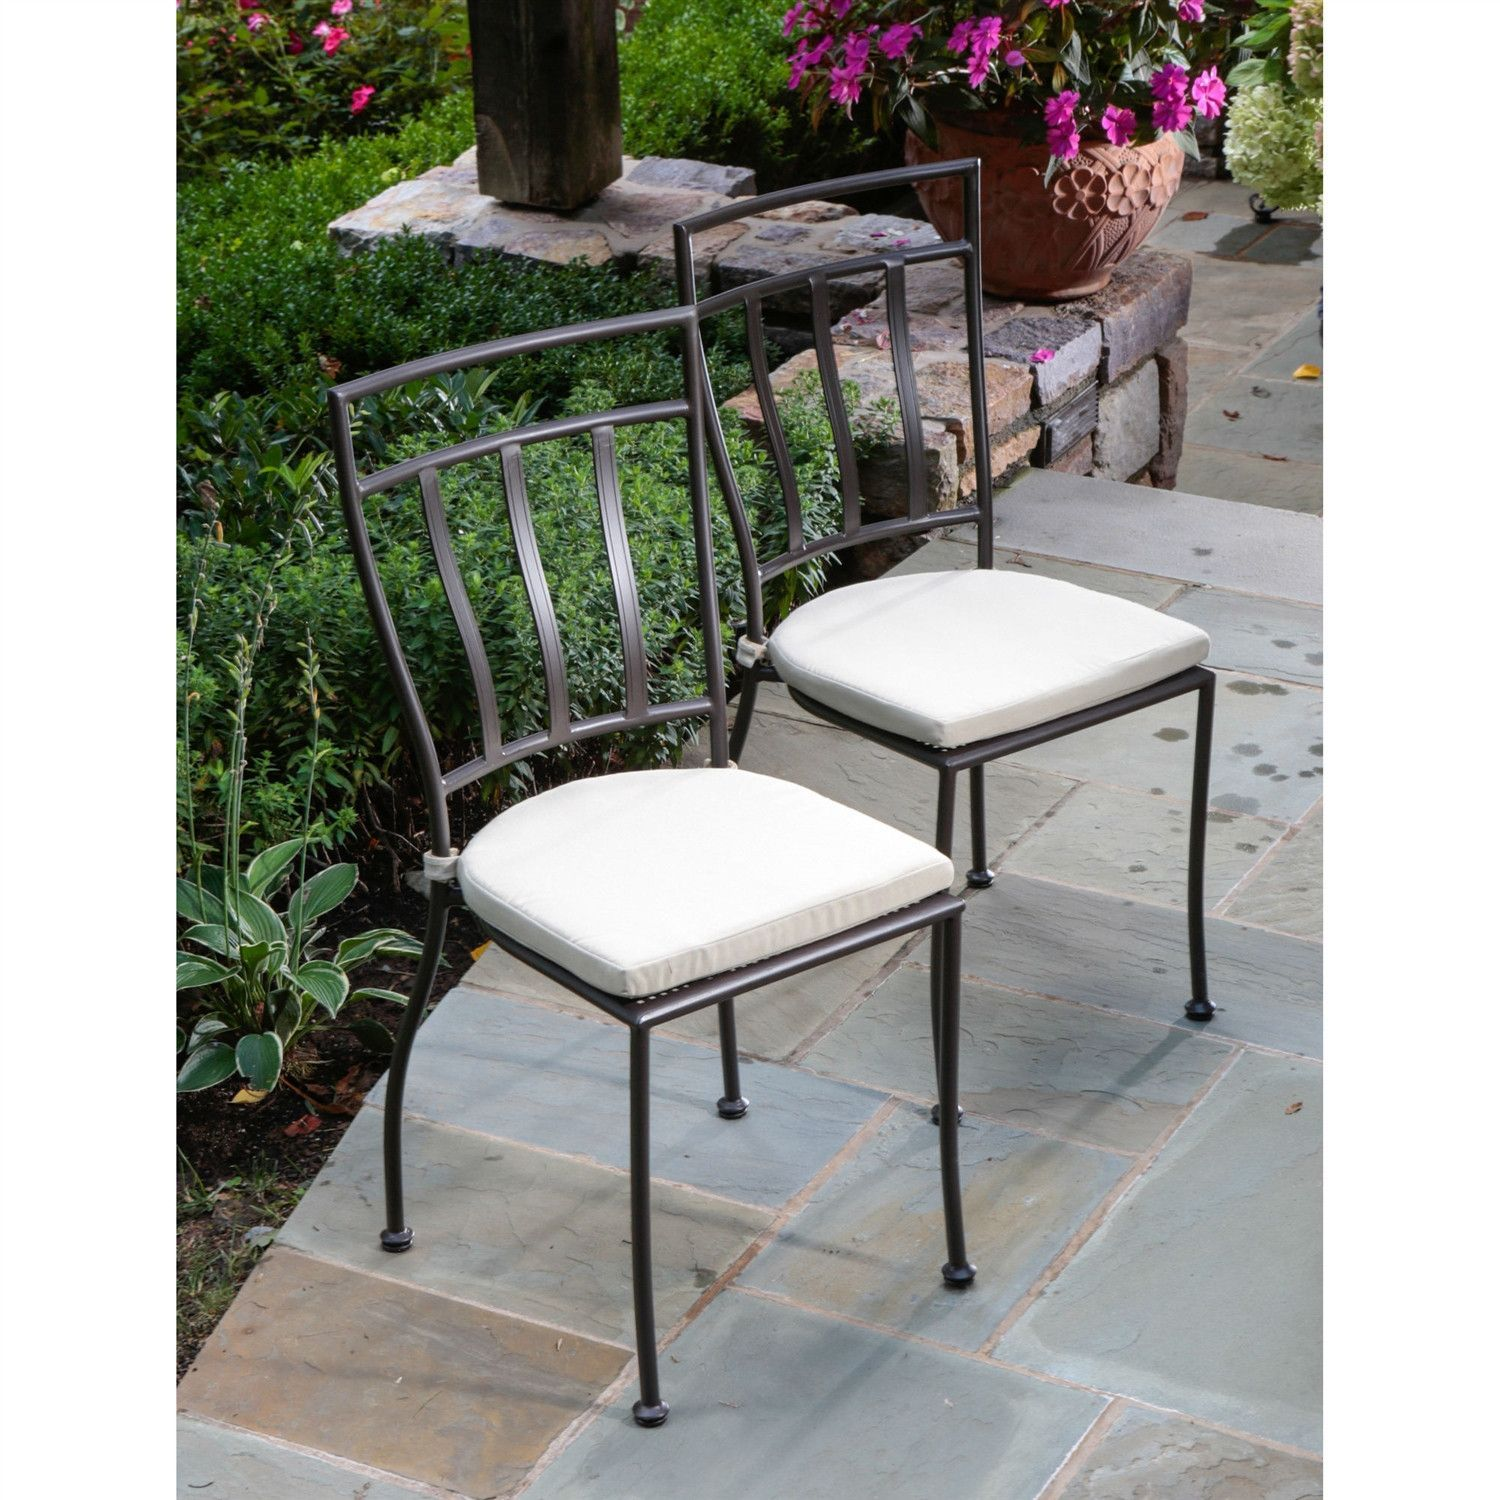 Iron Patio Chairs Set Of 2 Wrought Iron Outdoor Patio Bistro Chairs With